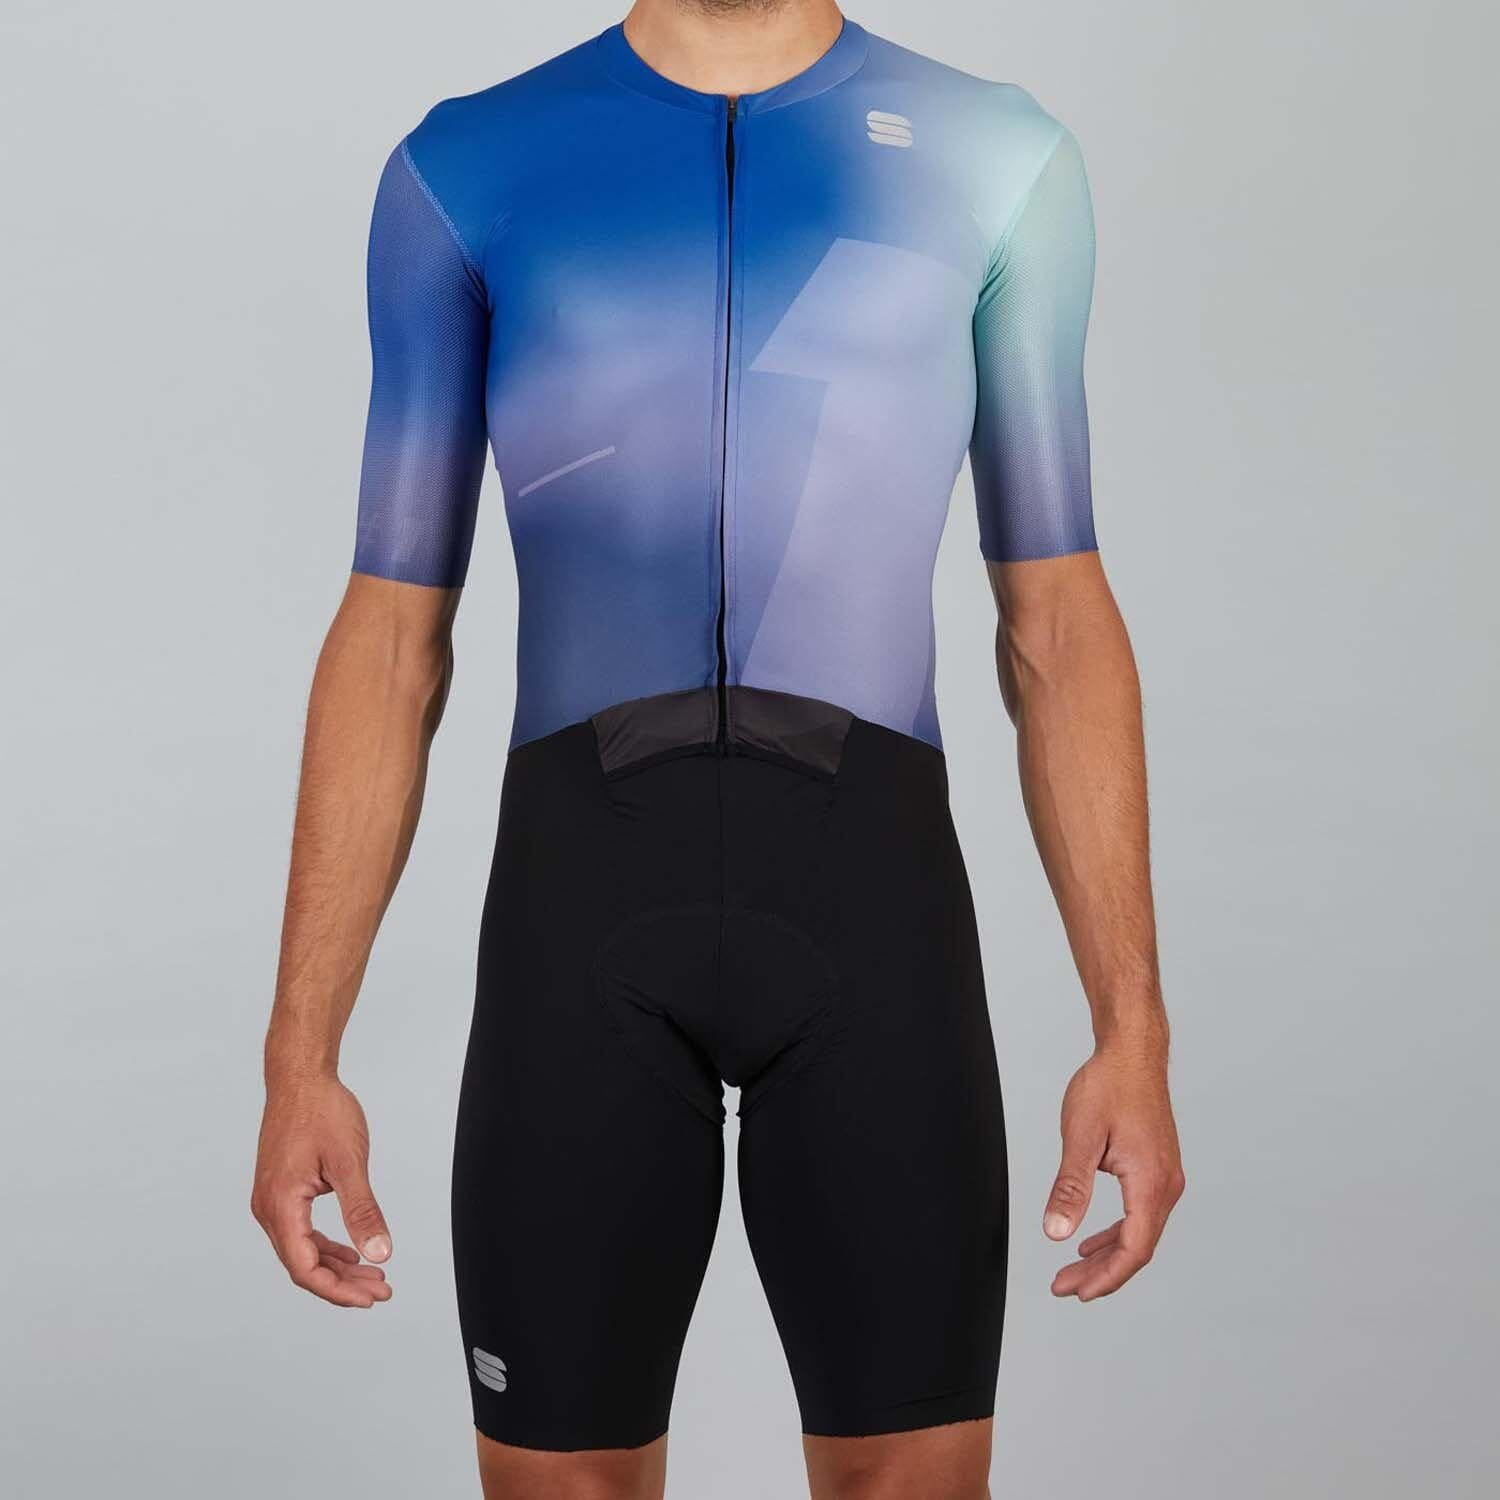 Sportful-Sportful Bomber Suit-Green/Blue-S-SF210000022-saddleback-elite-performance-cycling